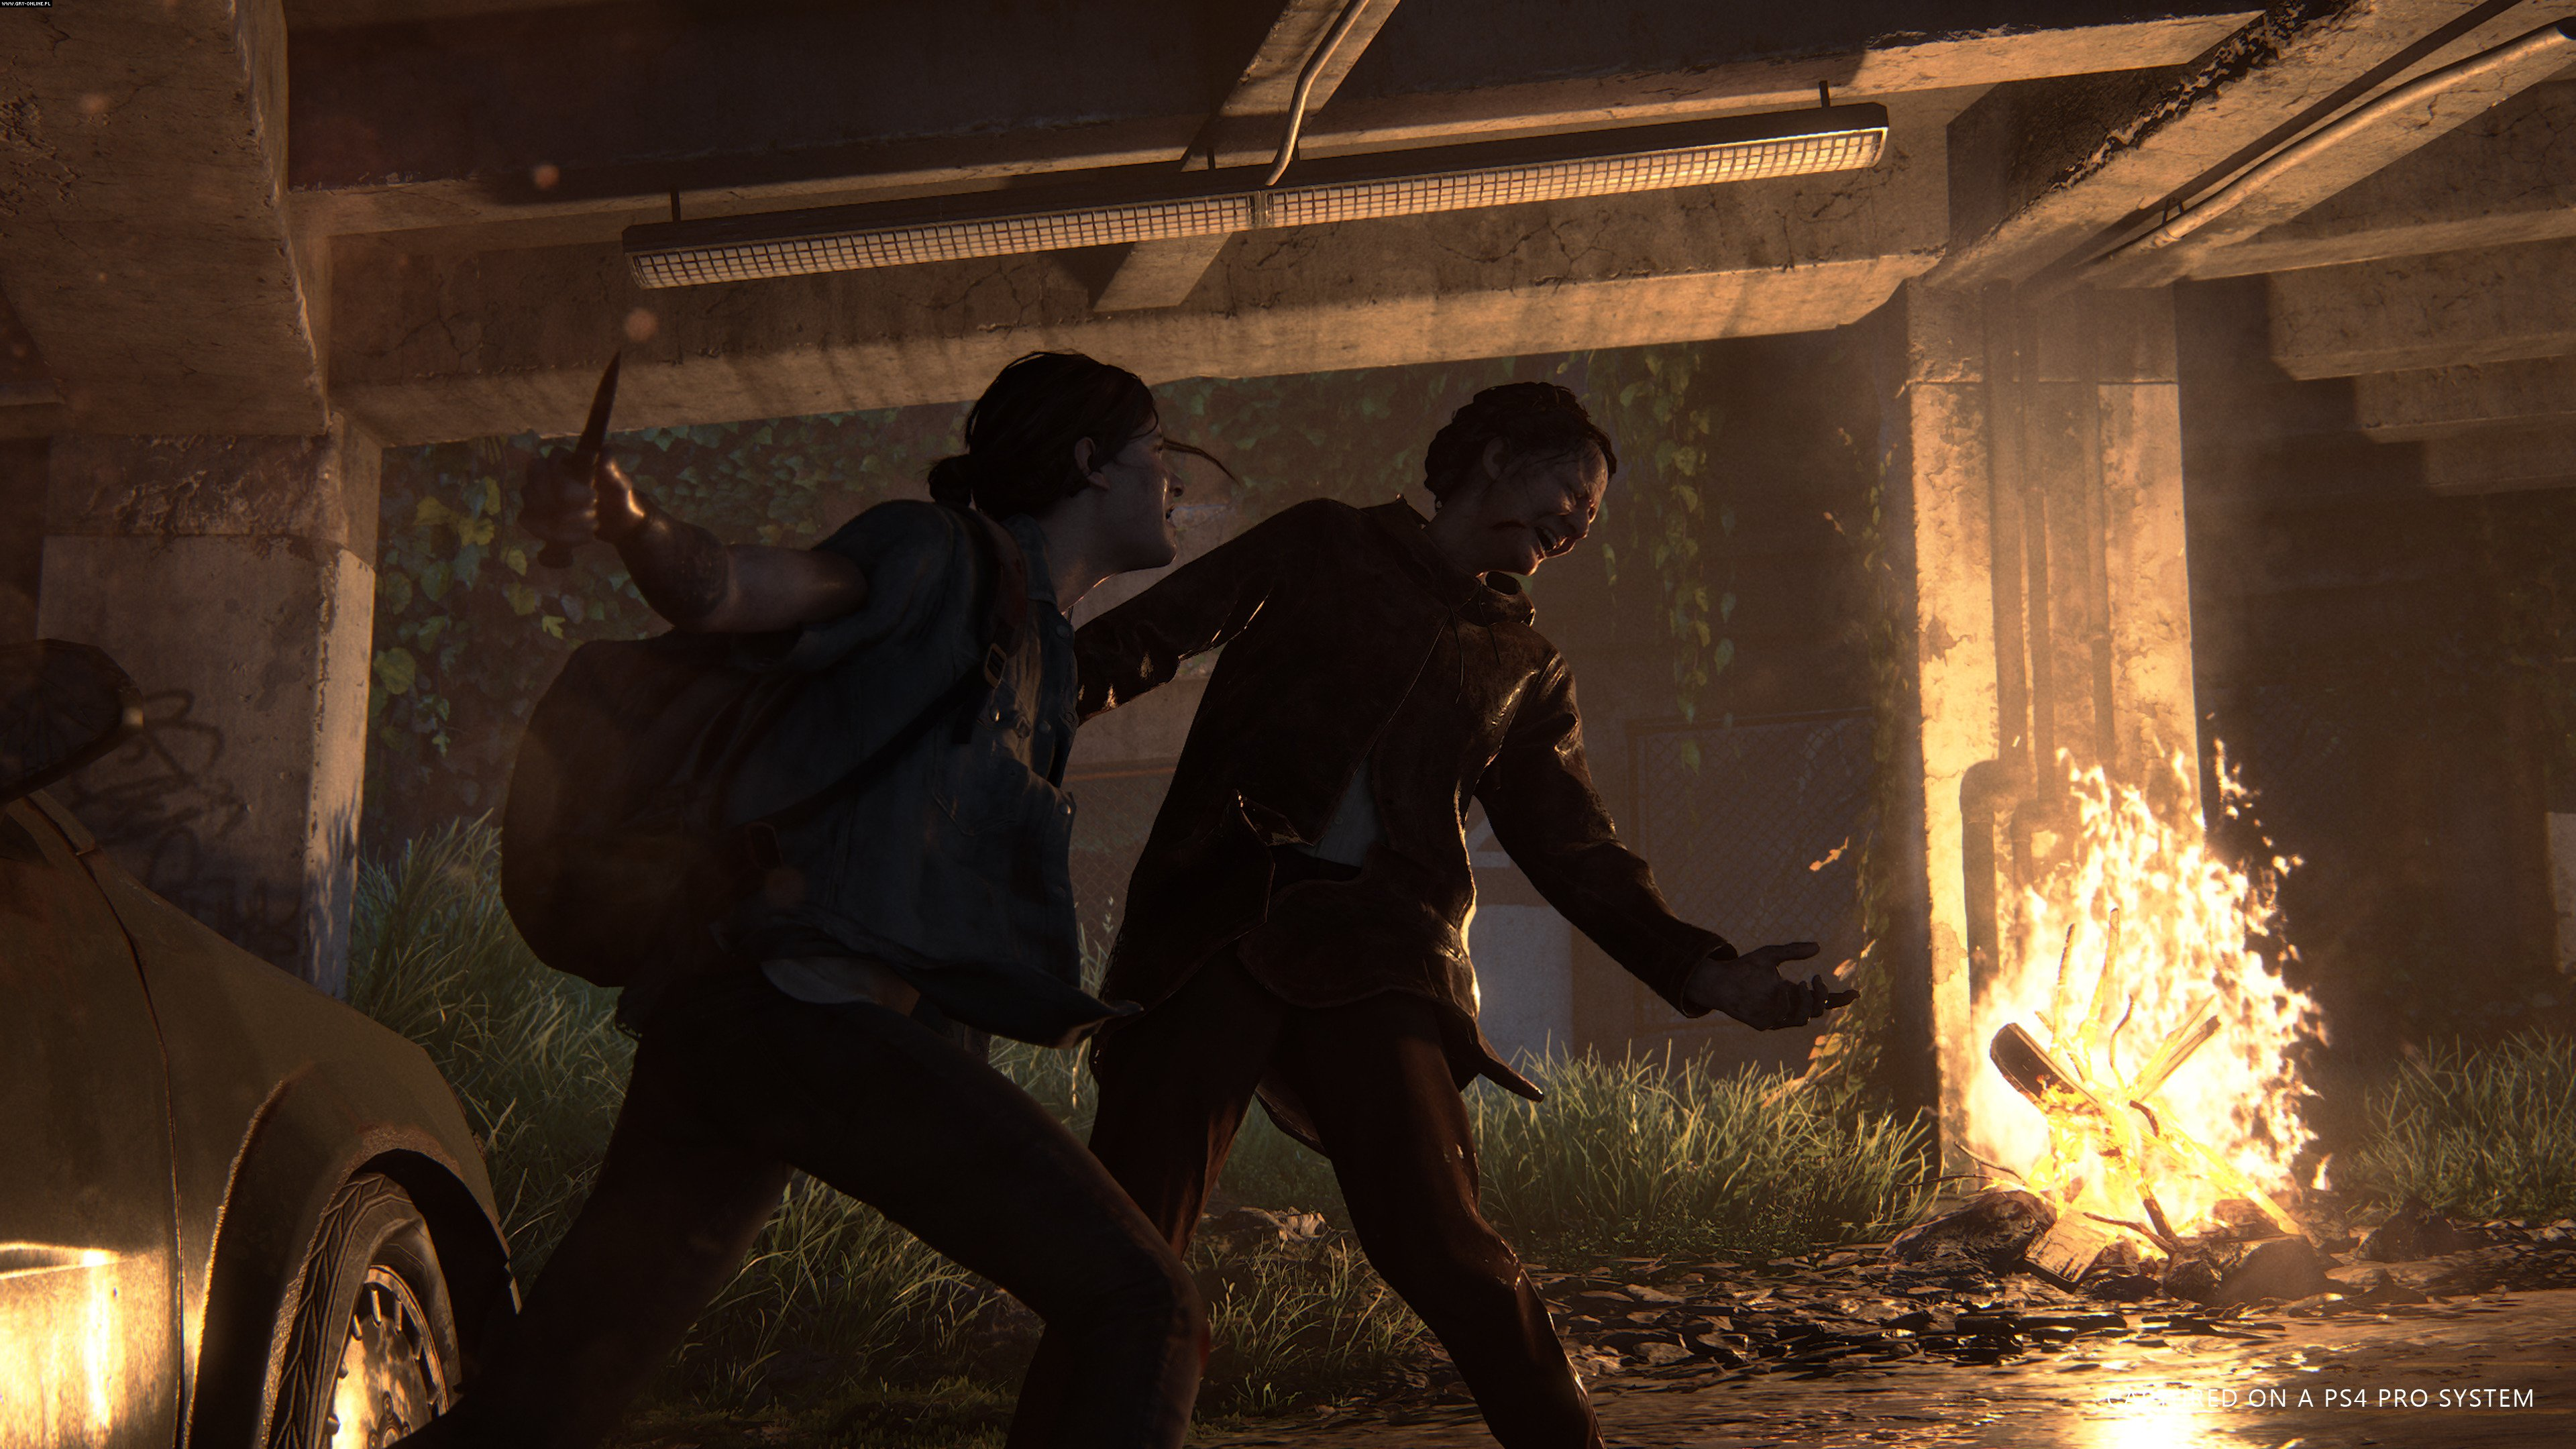 The Last of Us: Part II PS4 Gry Screen 11/38, Naughty Dog, Sony Interactive Entertainment